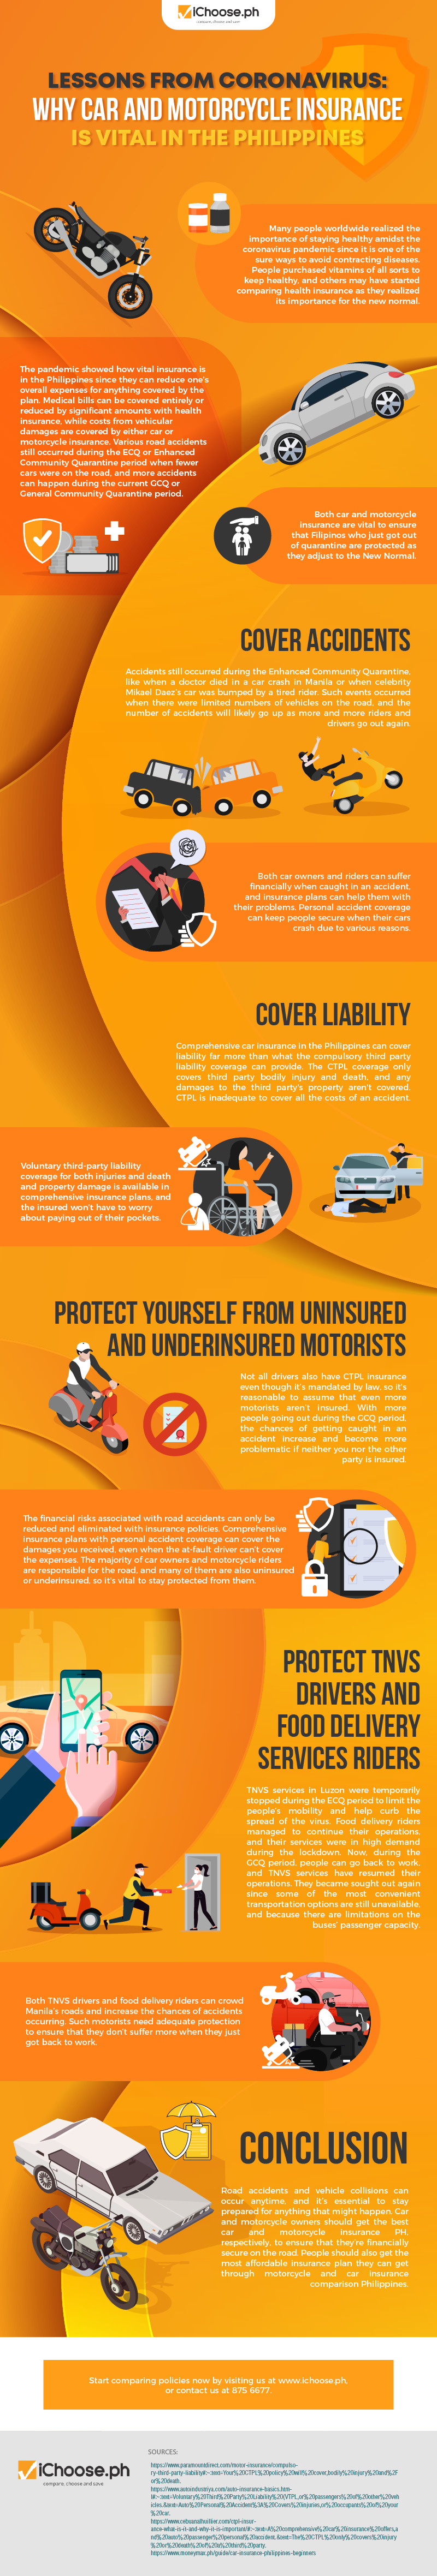 Lessons from Coronavirus_Why Car and Motorcycle Insurance is Vital in the Philippines-01